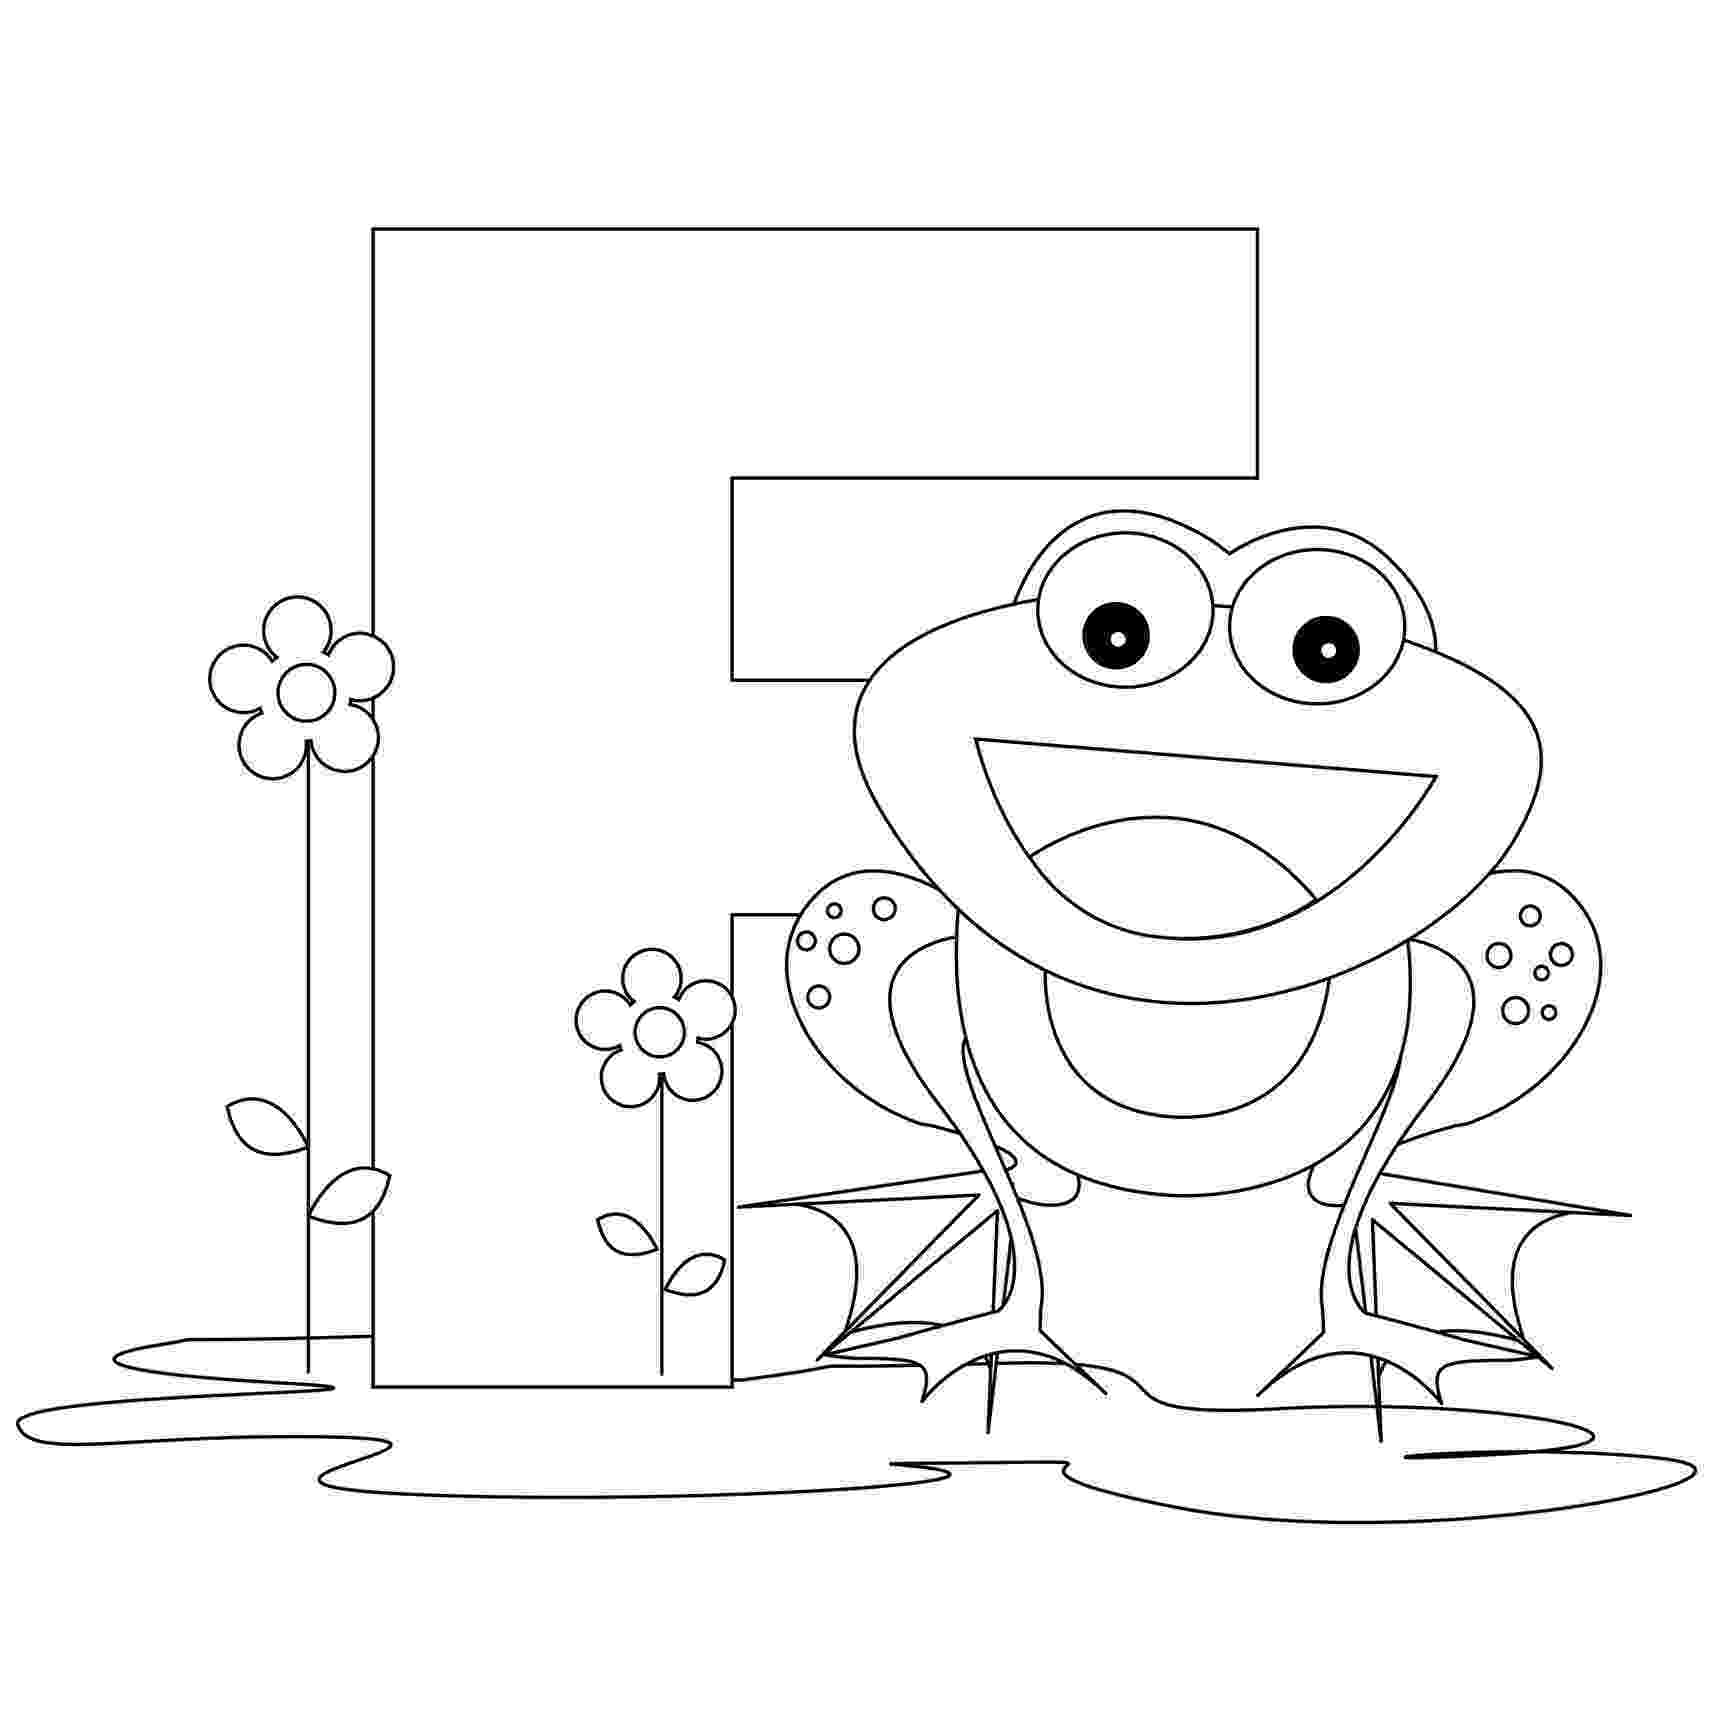 free alphabet coloring pages free printable alphabet coloring pages for kids best coloring pages free alphabet 1 1